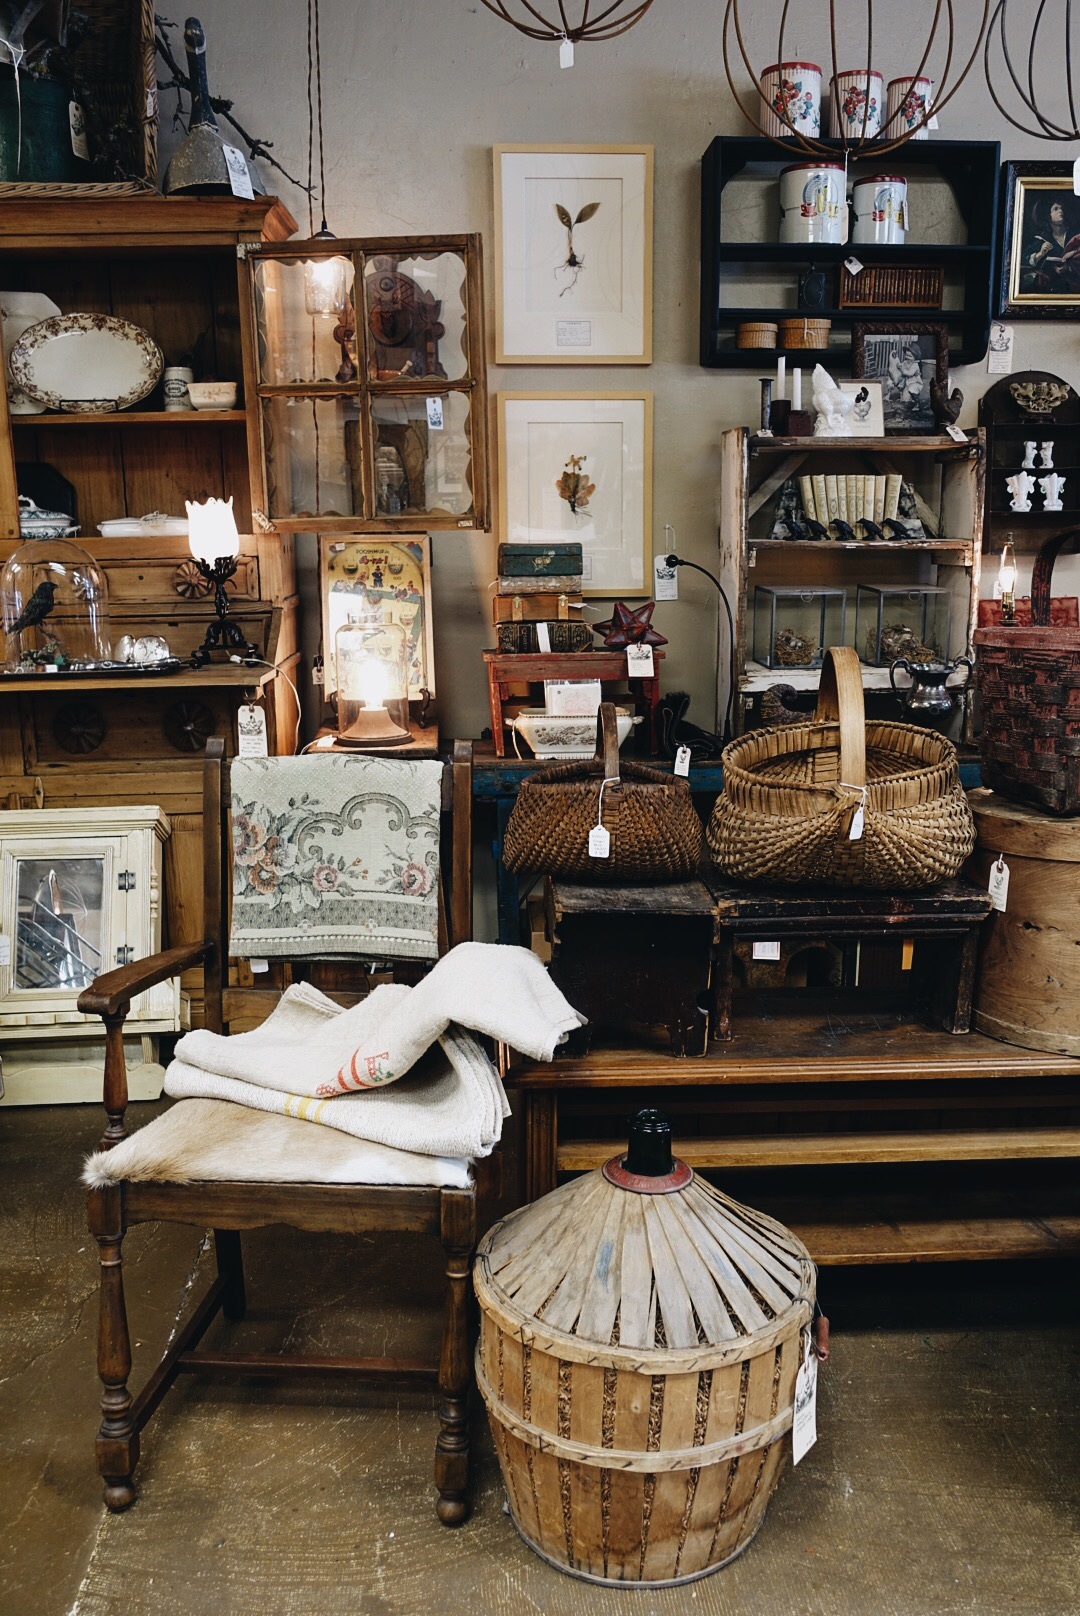 best sacramento vintage and antique shopping - Best Sacramento Antique Shopping - Cheetah Is The New Black